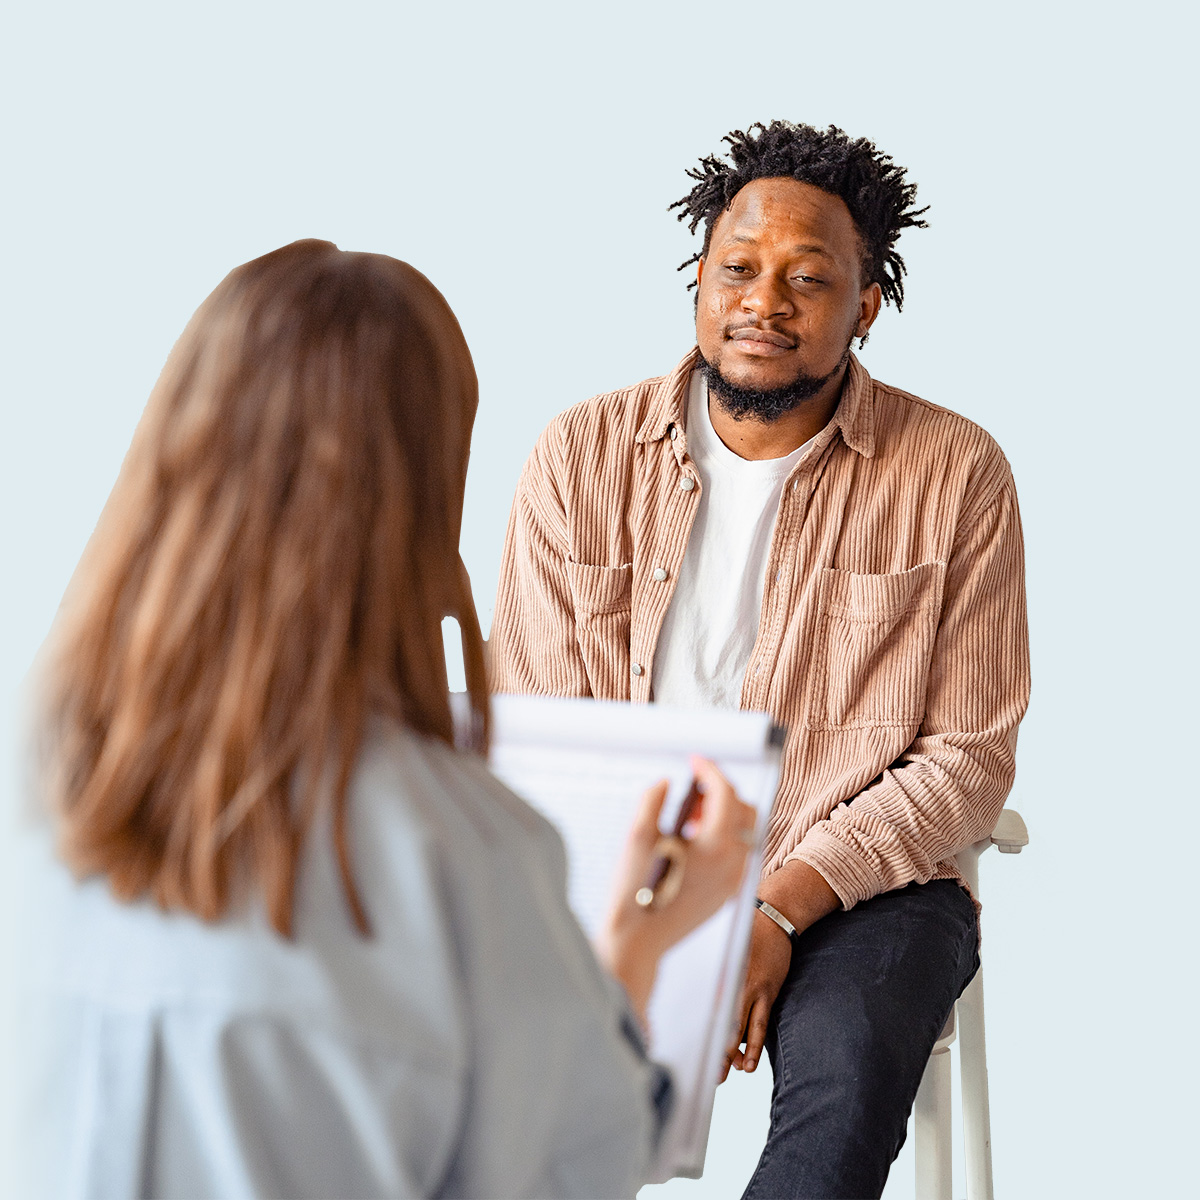 Black man in counseling session with doctor